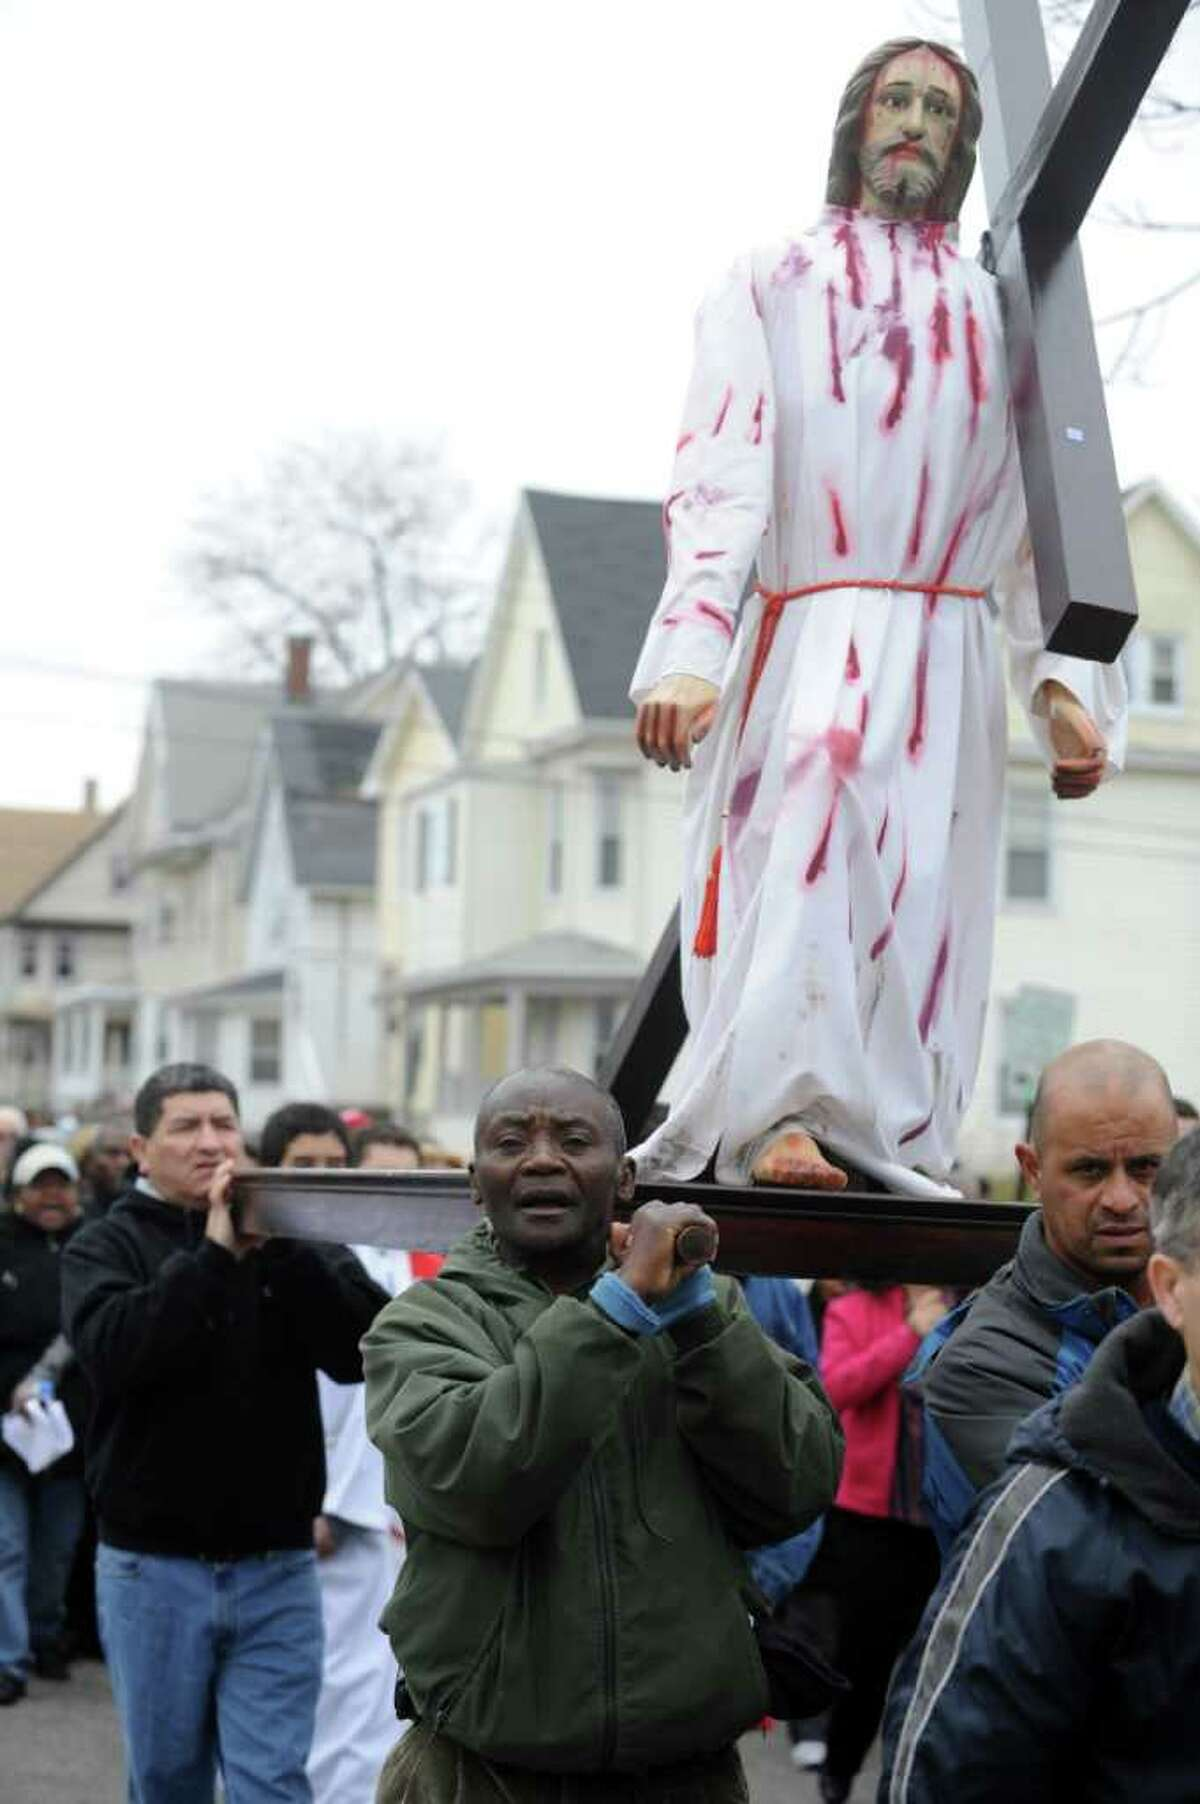 Parishioners and clergy from St. Charles Borromeo Roman Catholic Church take part in a procession through the East Side of Bridgeport, Conn. on Good Friday, April 22, 2011.